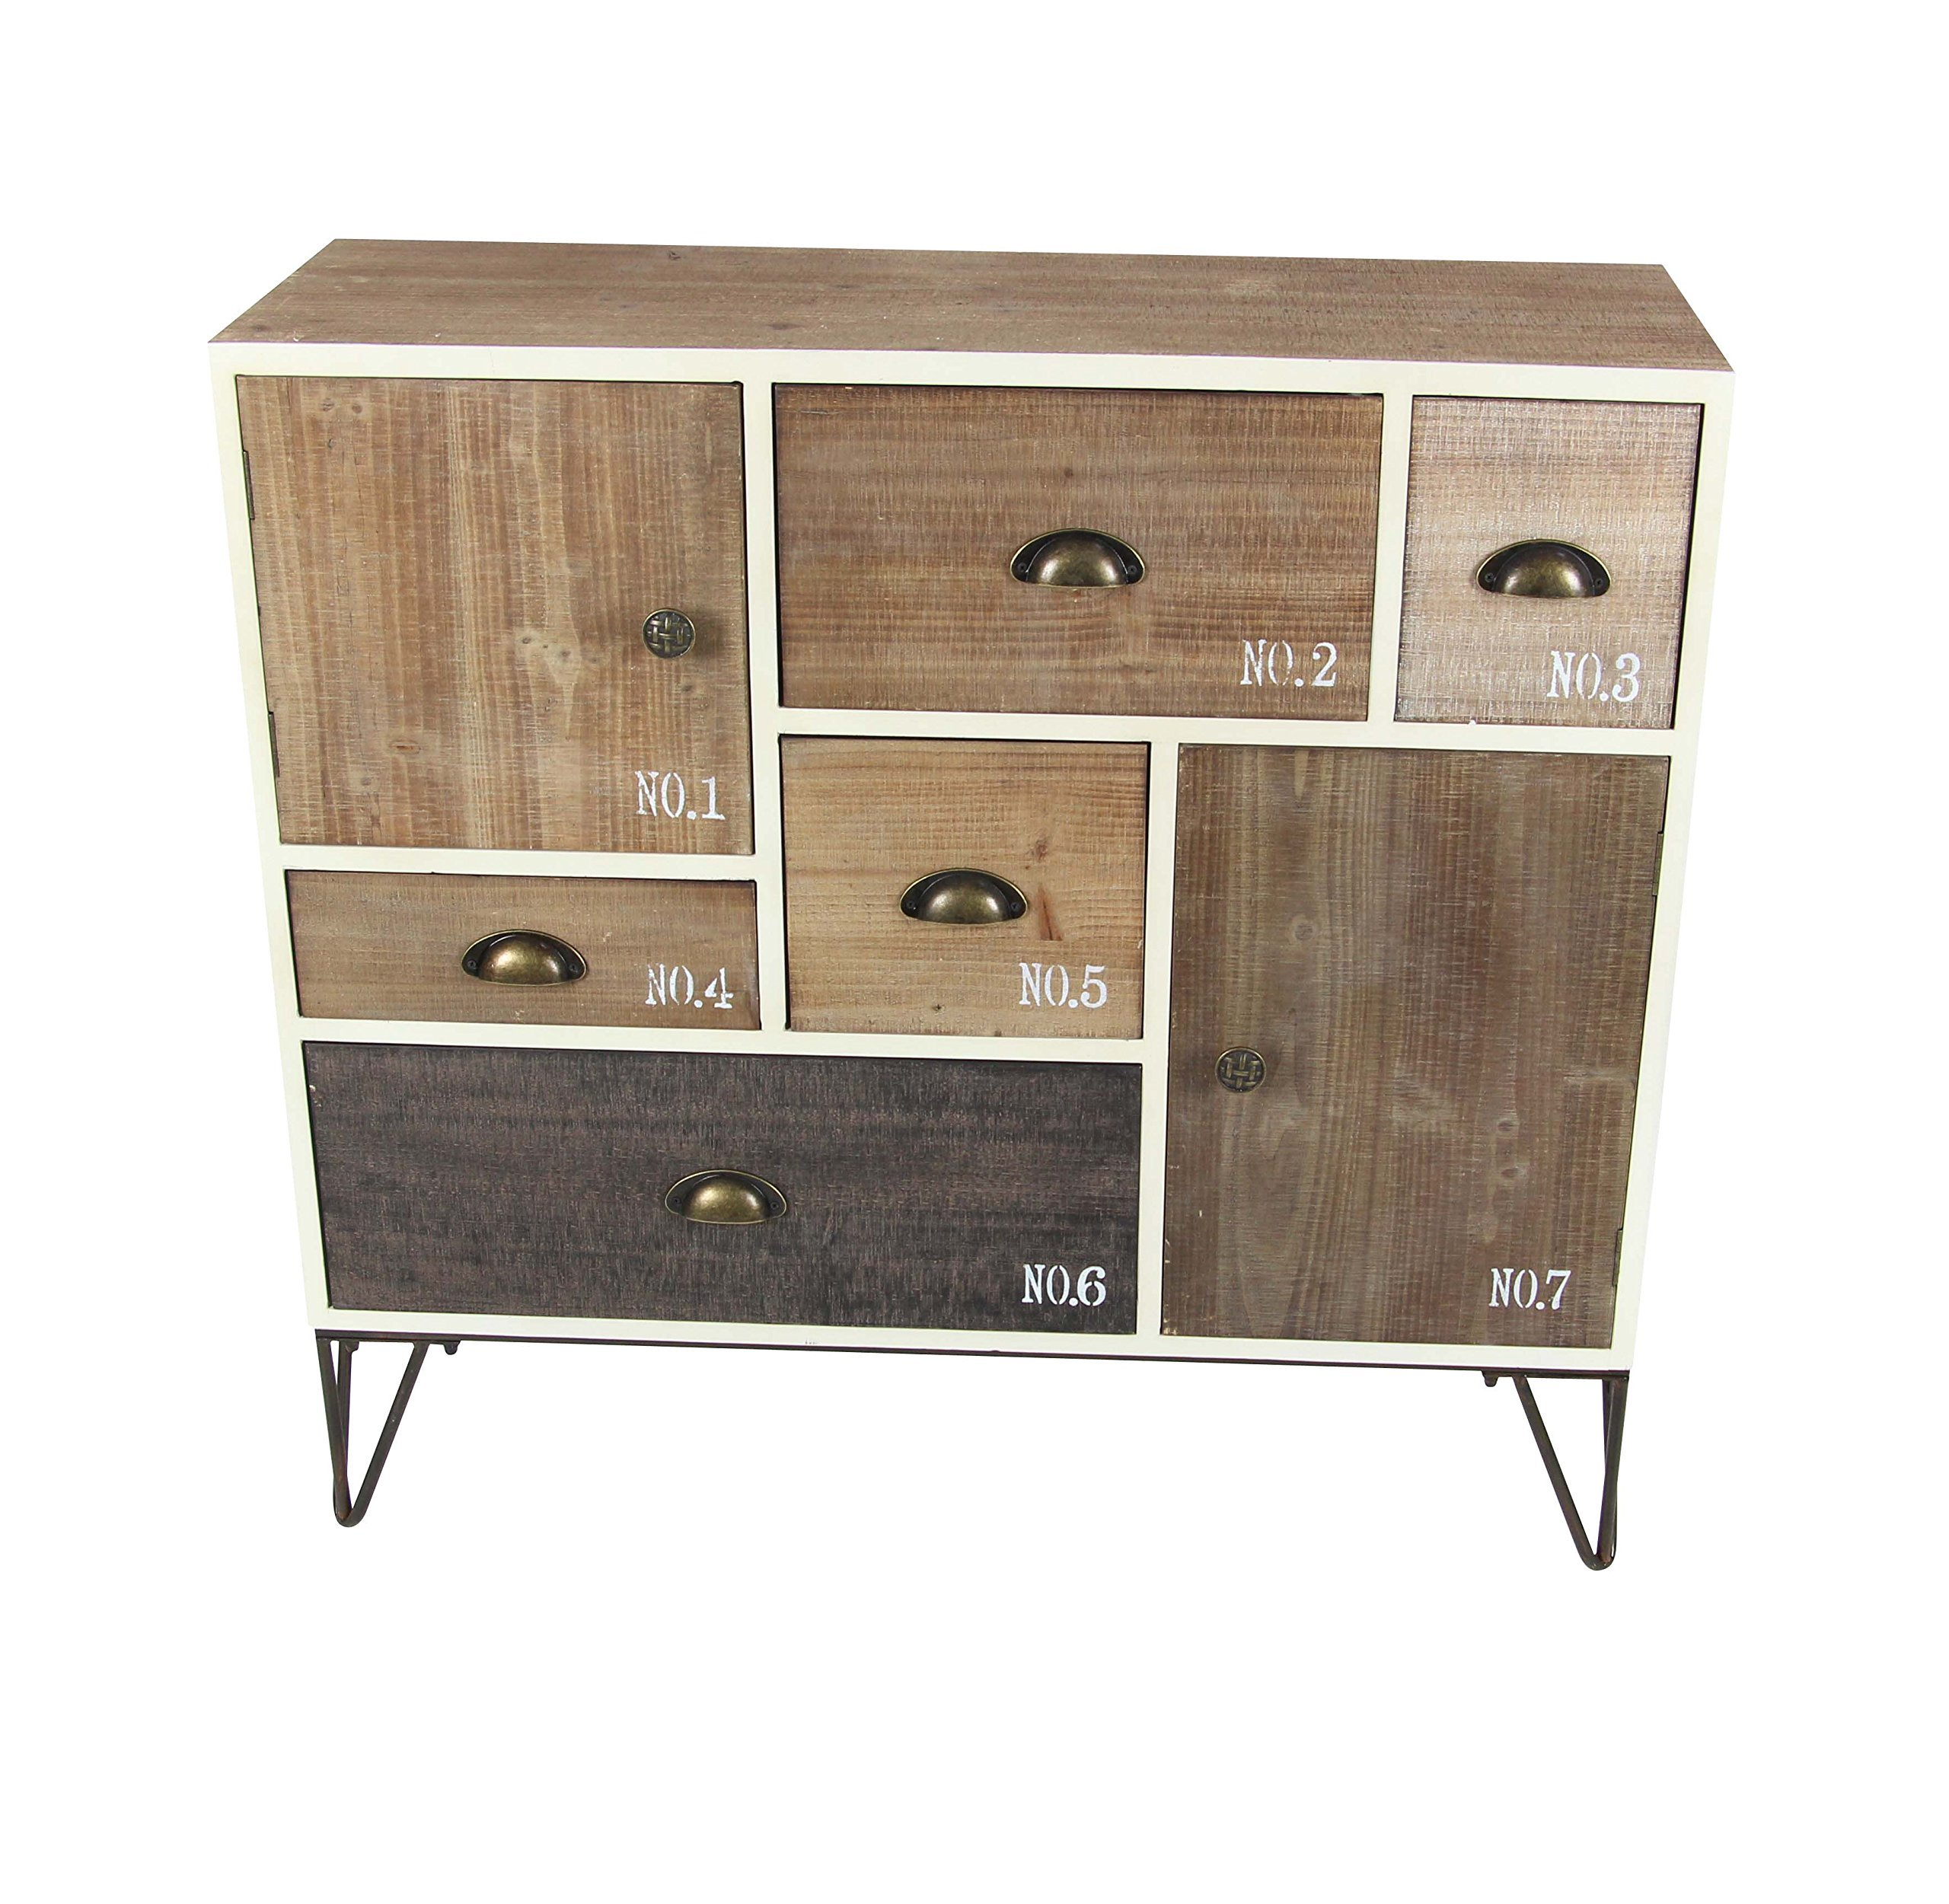 Deco 79 94622 Wood and Metal Chest 35'' W, 33'' H, White/Black/Brown